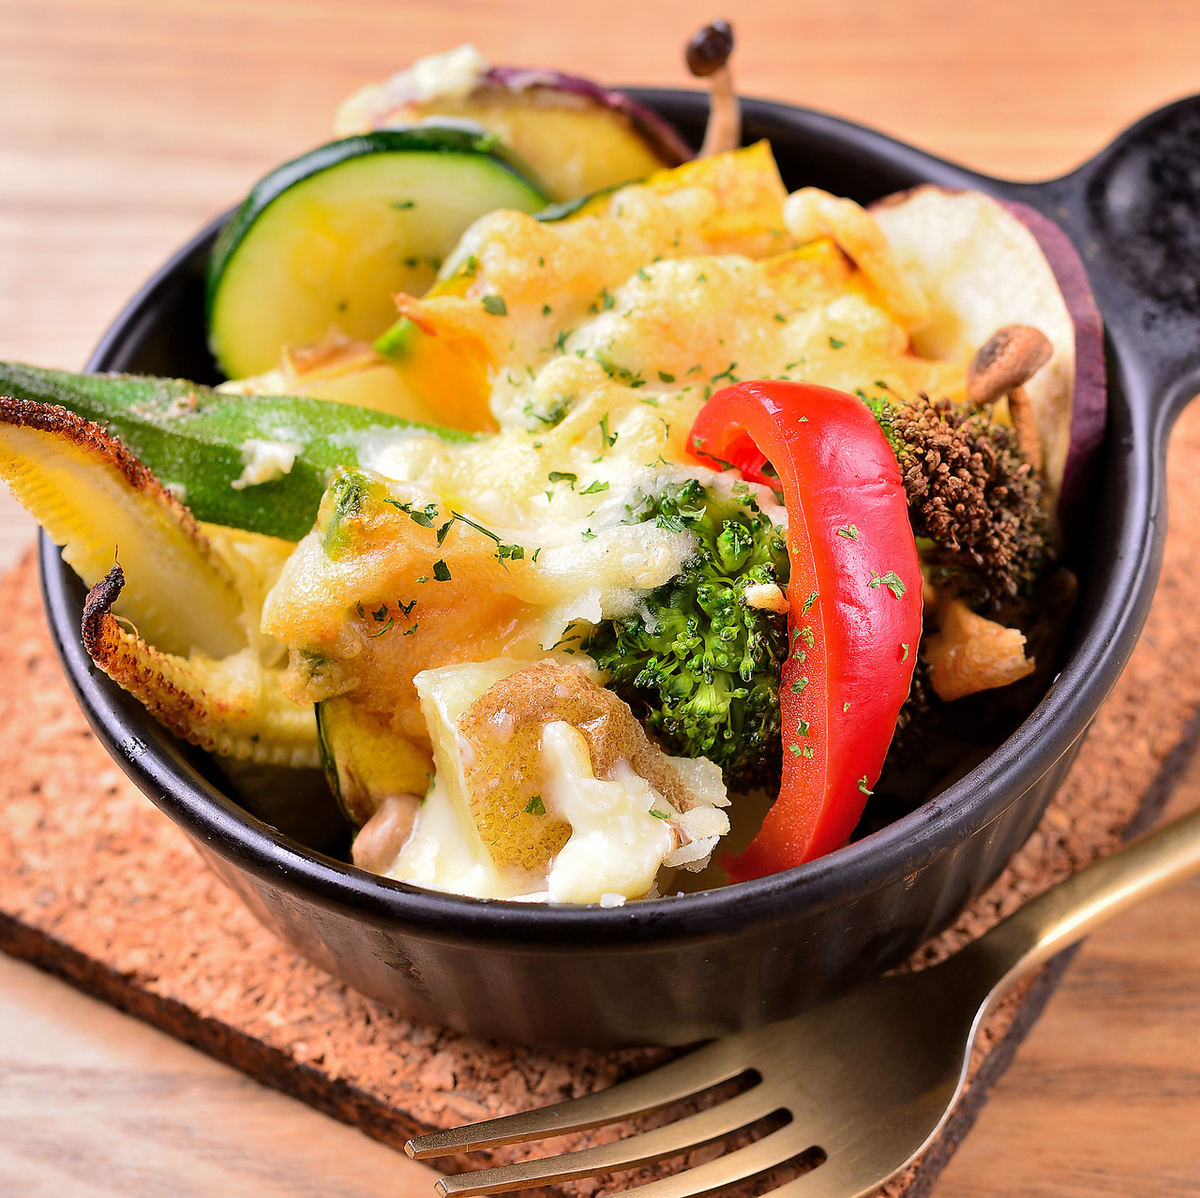 Grilled vegetables Camembert